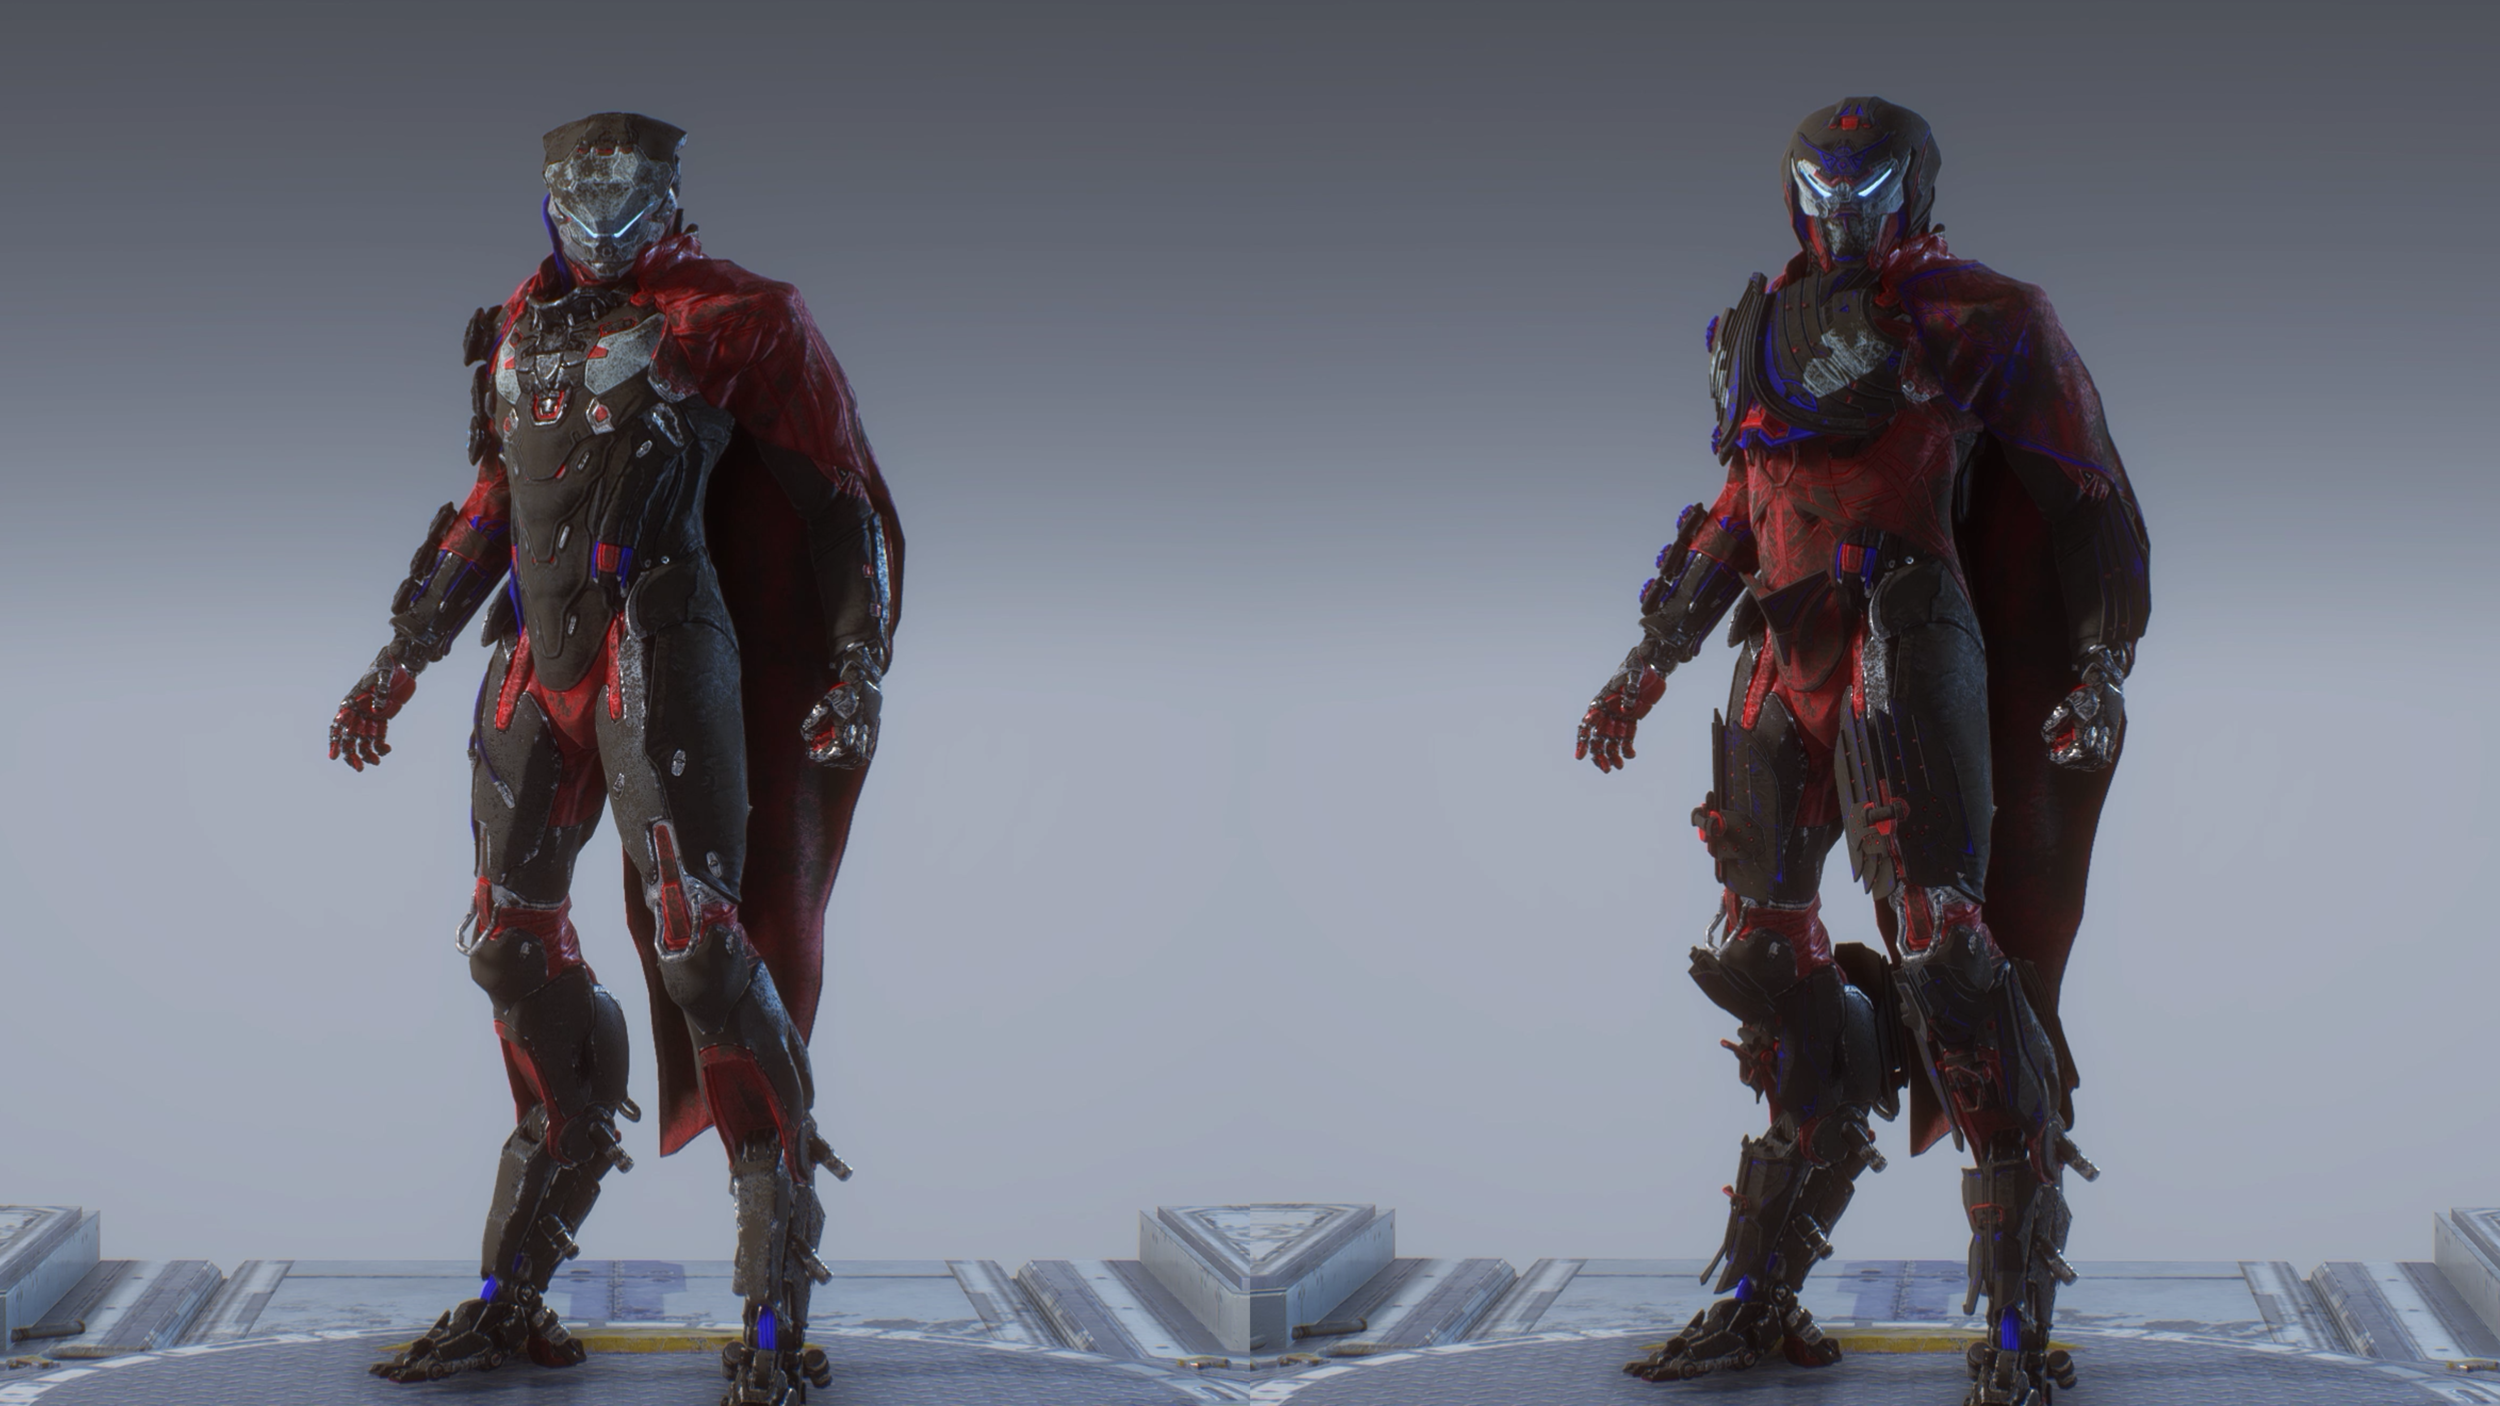 Left is the standard Armour Set of the Storm, which is still rather badass, Right is the Legion of Dawn edition Armour Set which is even more spectacular.